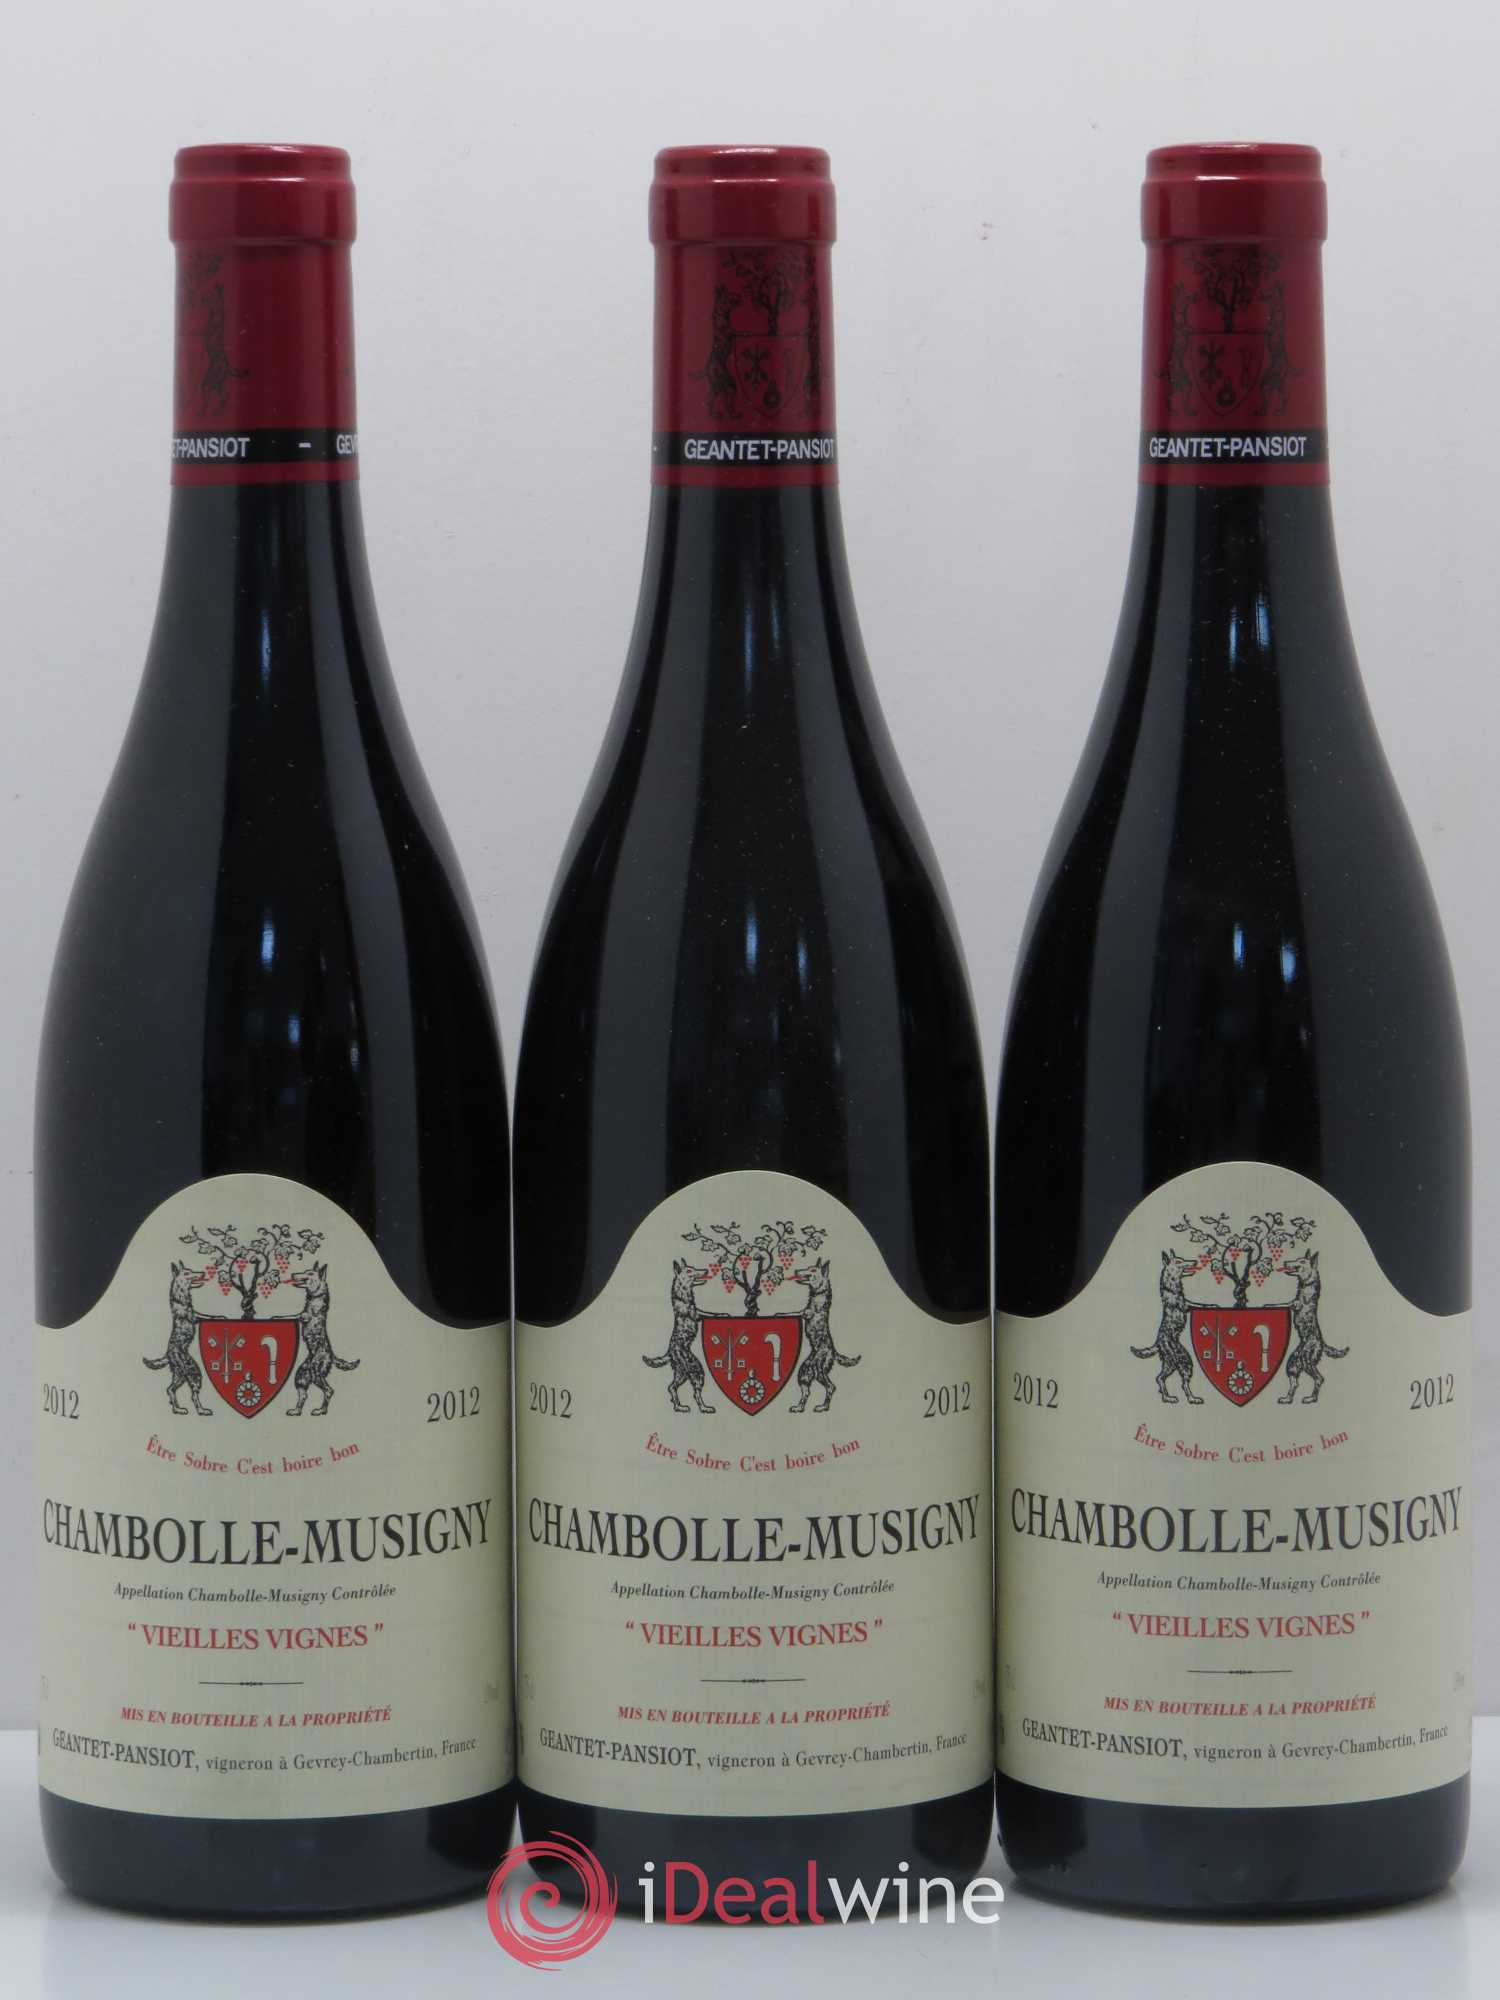 Chambolle-Musigny Vieilles vignes Geantet-Pansiot  2012 - Lot of 3 Bottles